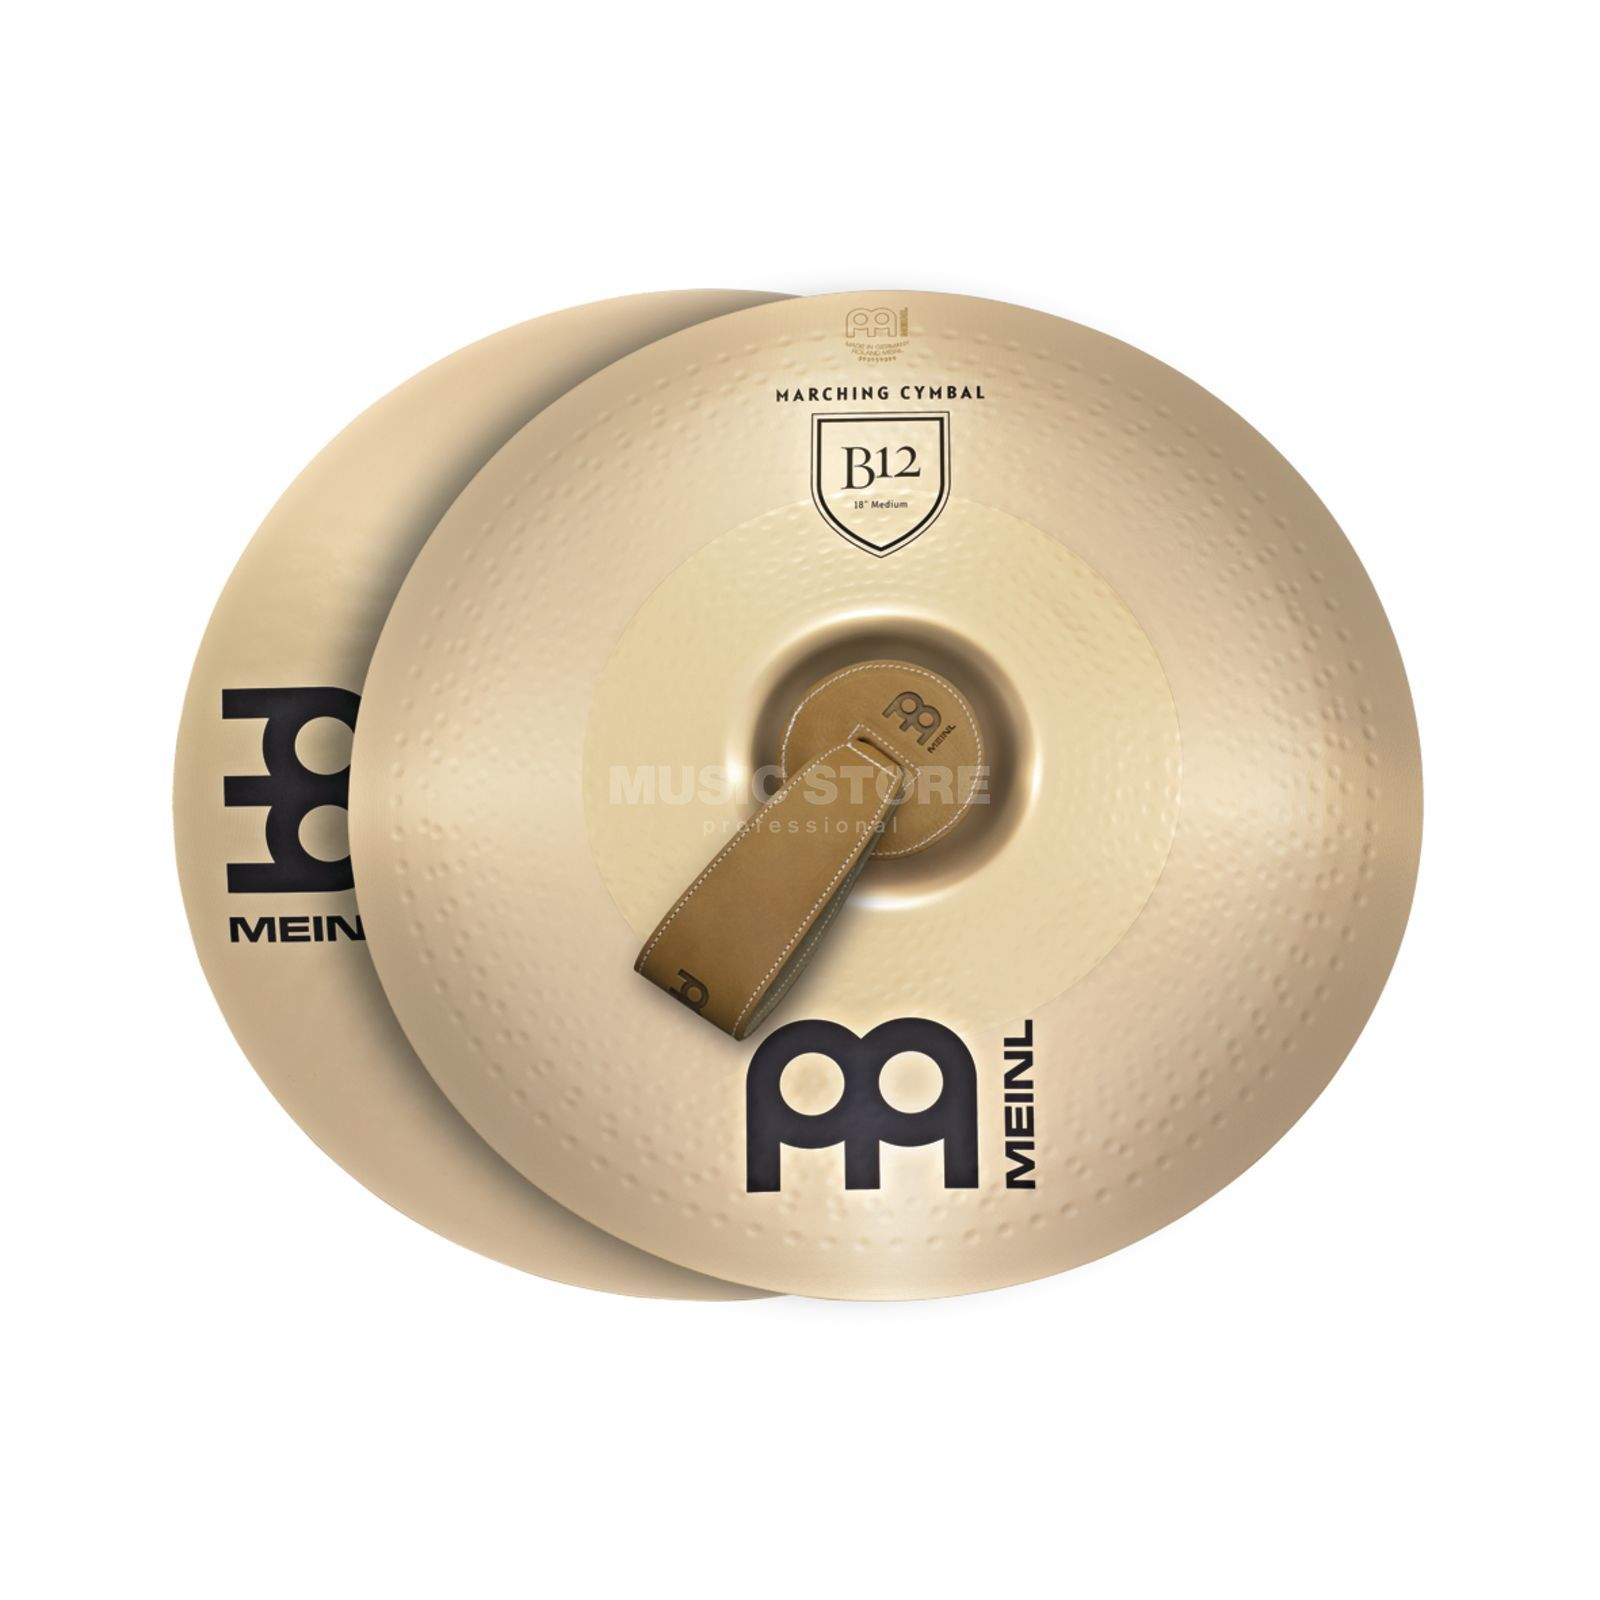 "Meinl B12 Marching Cymbals 20"", Medium, MA-B12-20M Produktbillede"